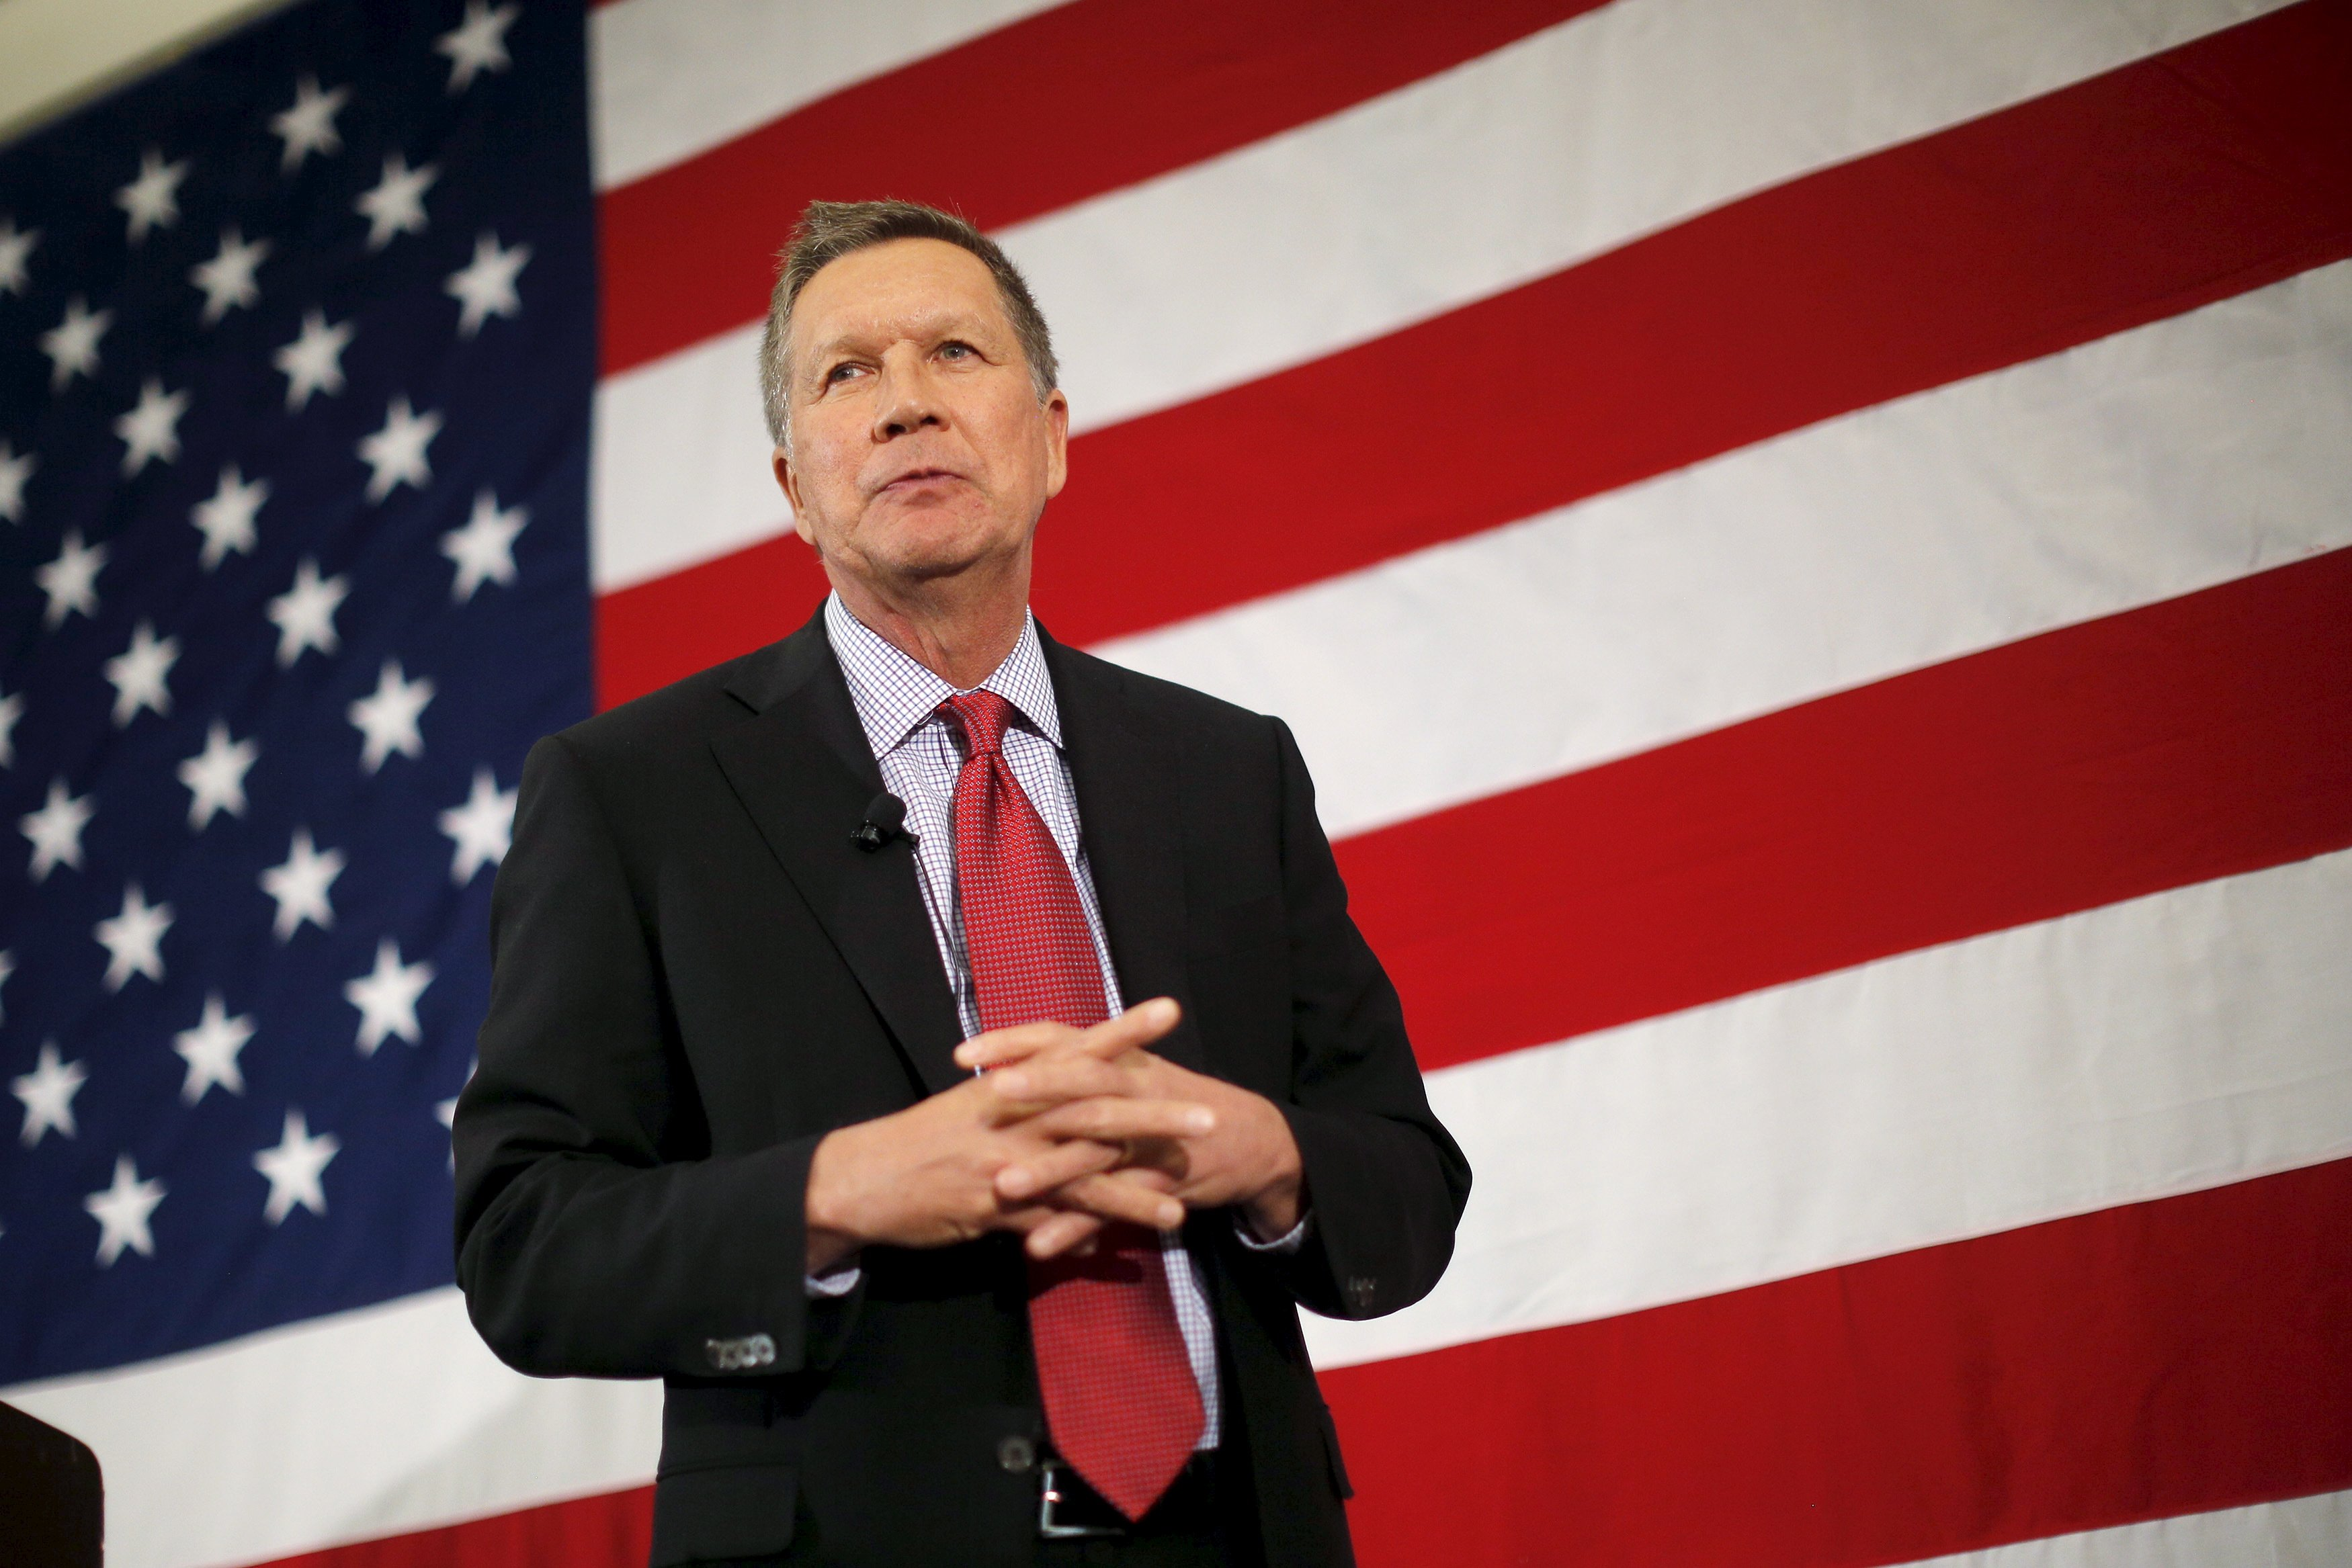 John Kasich coy on potential 2020 Trump primary challenge